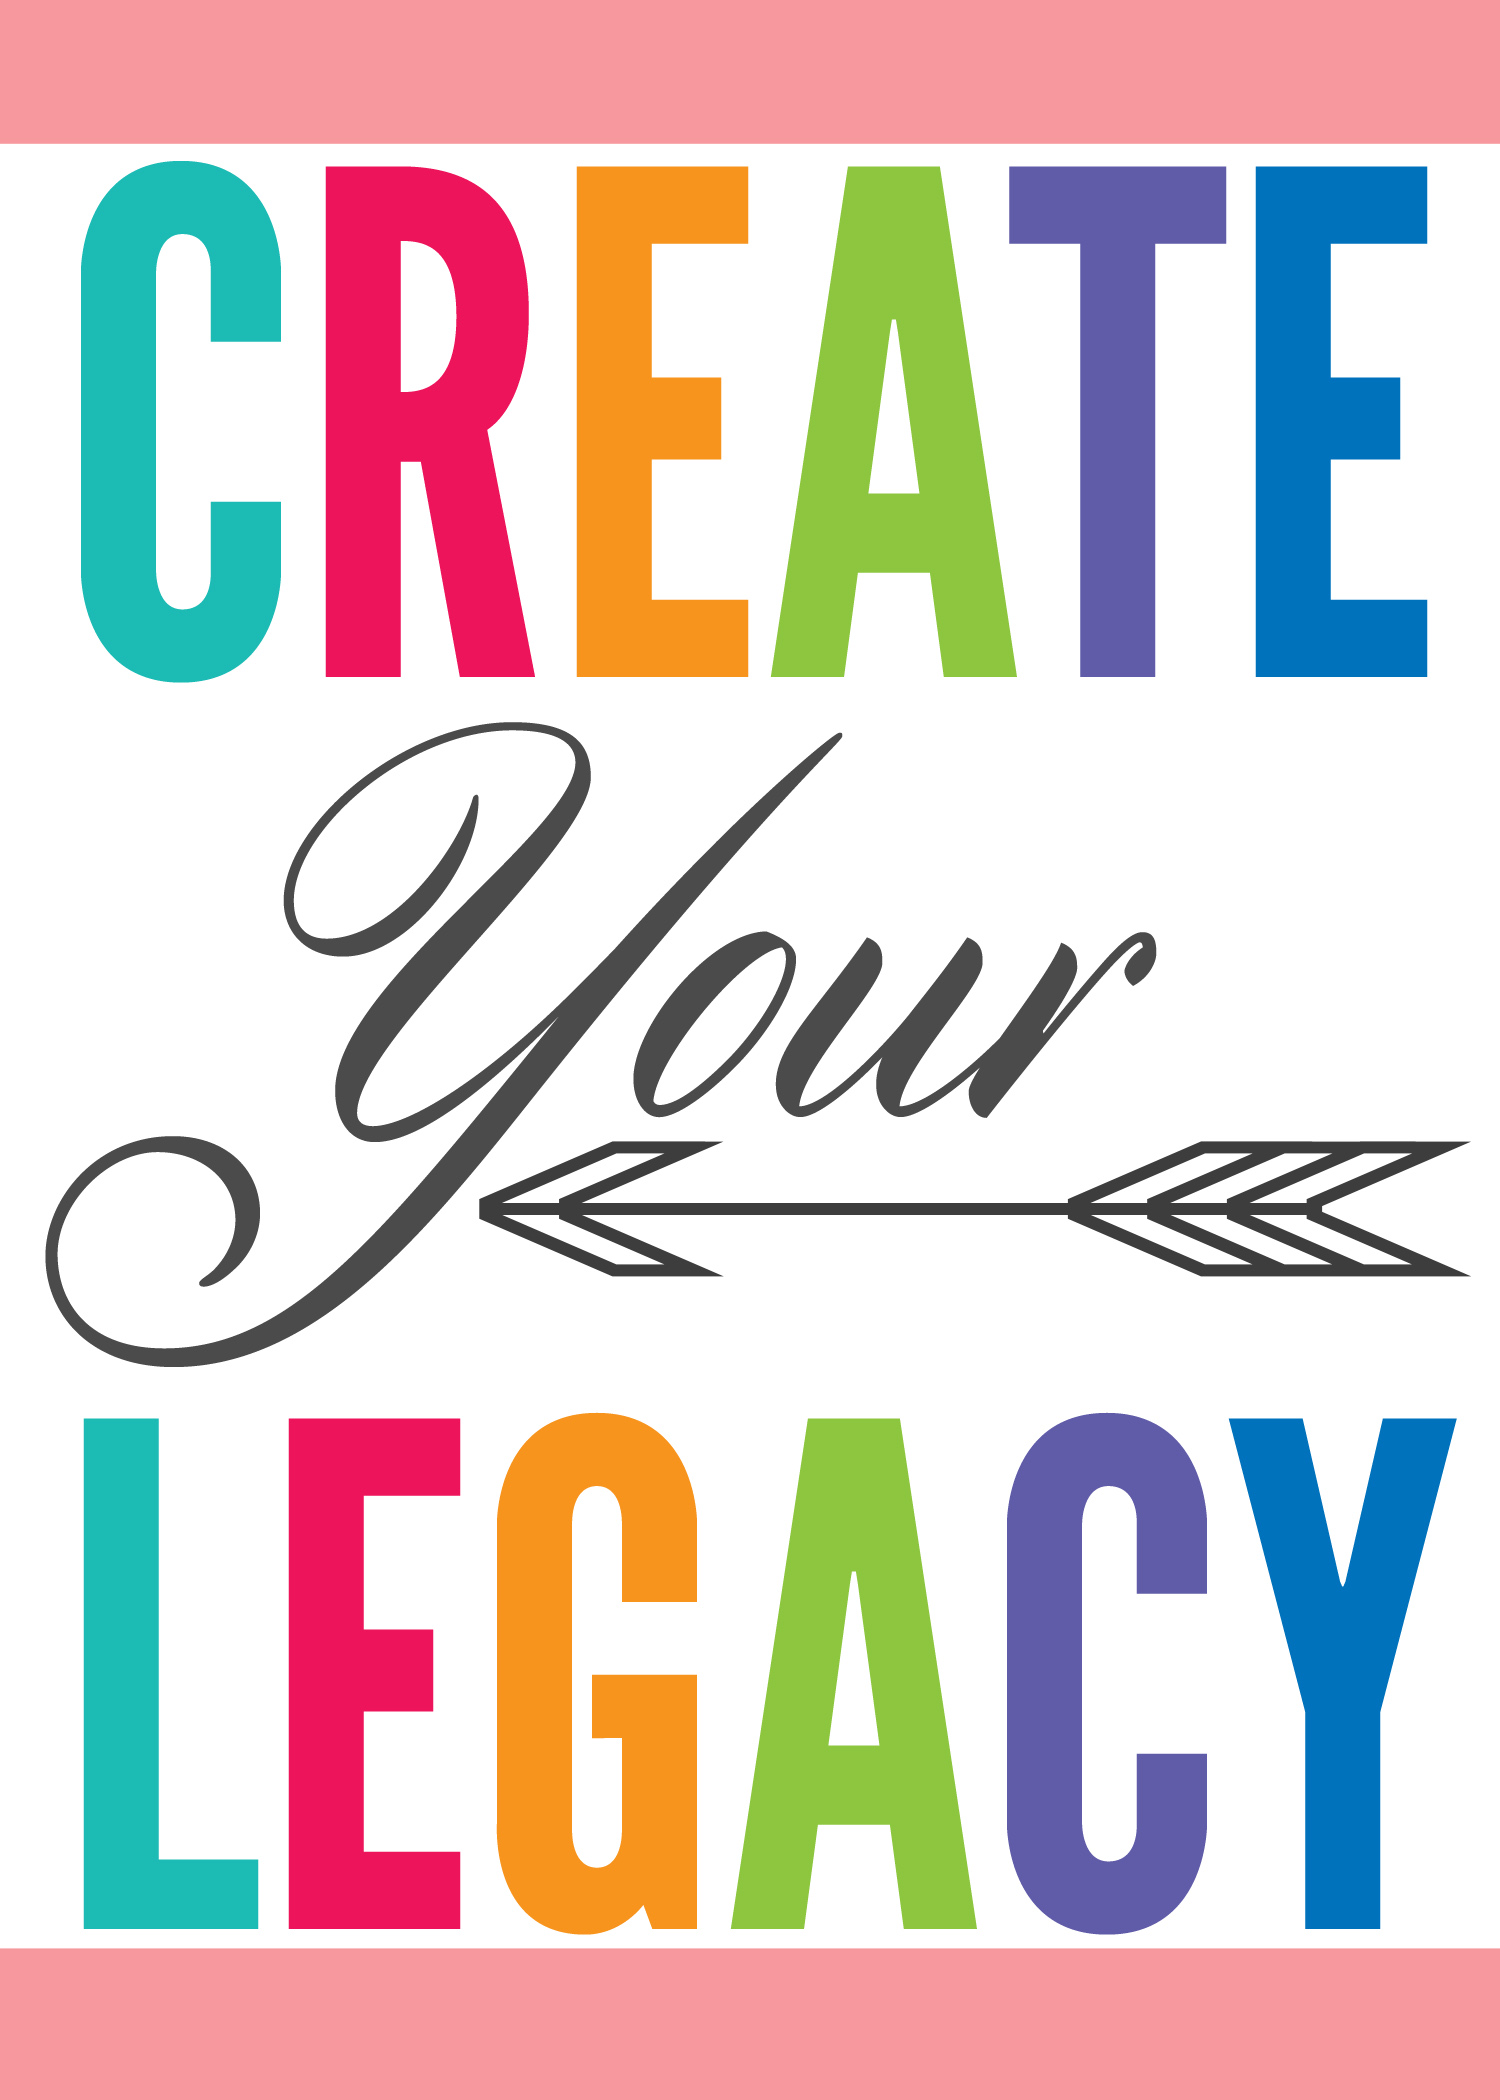 Create Your Legacy - Inspirational thoughts at Positively Splendid about the importance of creativity